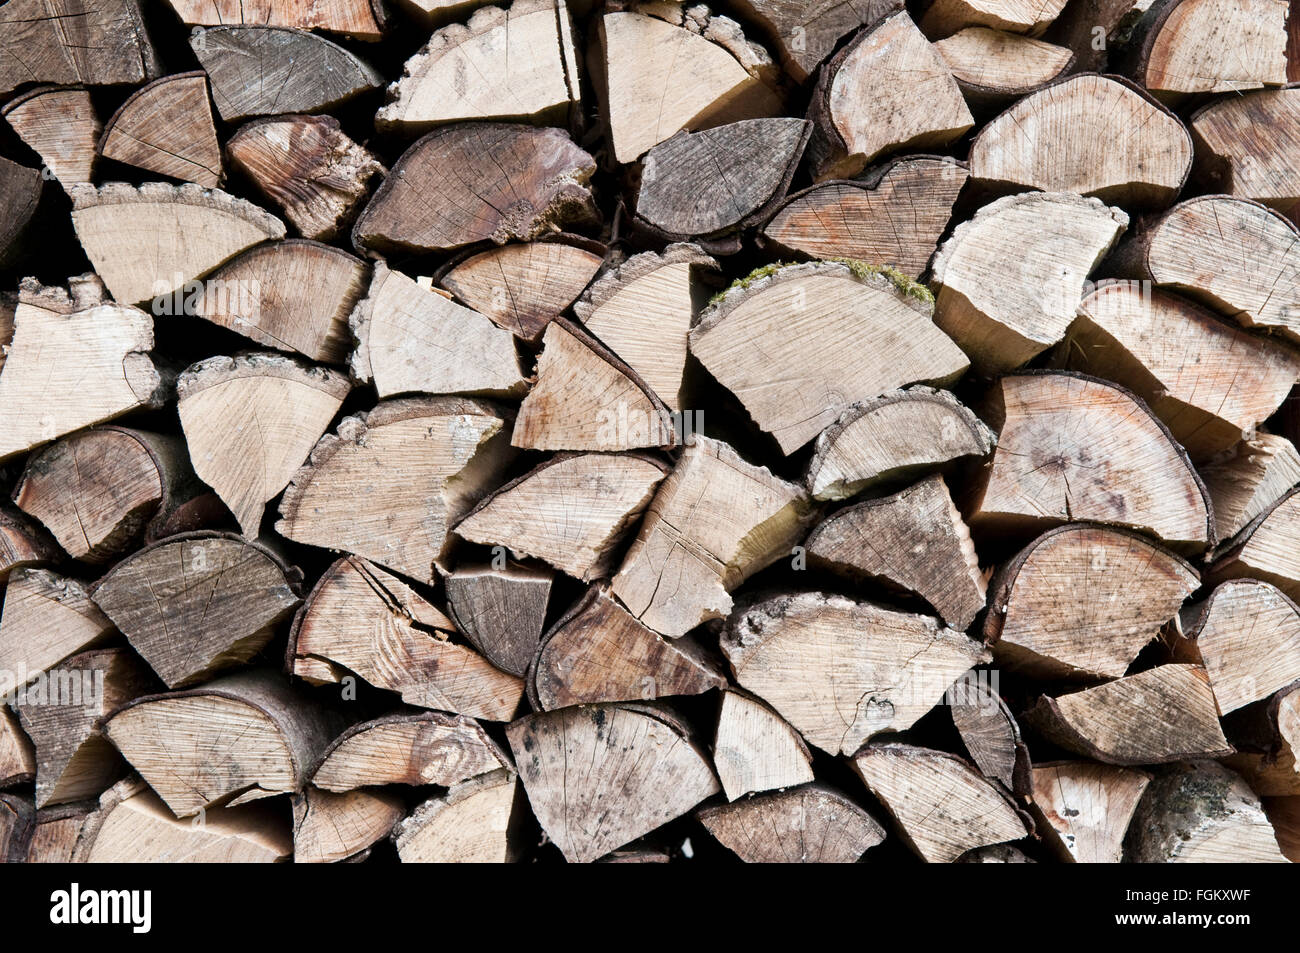 End on view of a pile of roughly chopped wooden logs Stock Photo